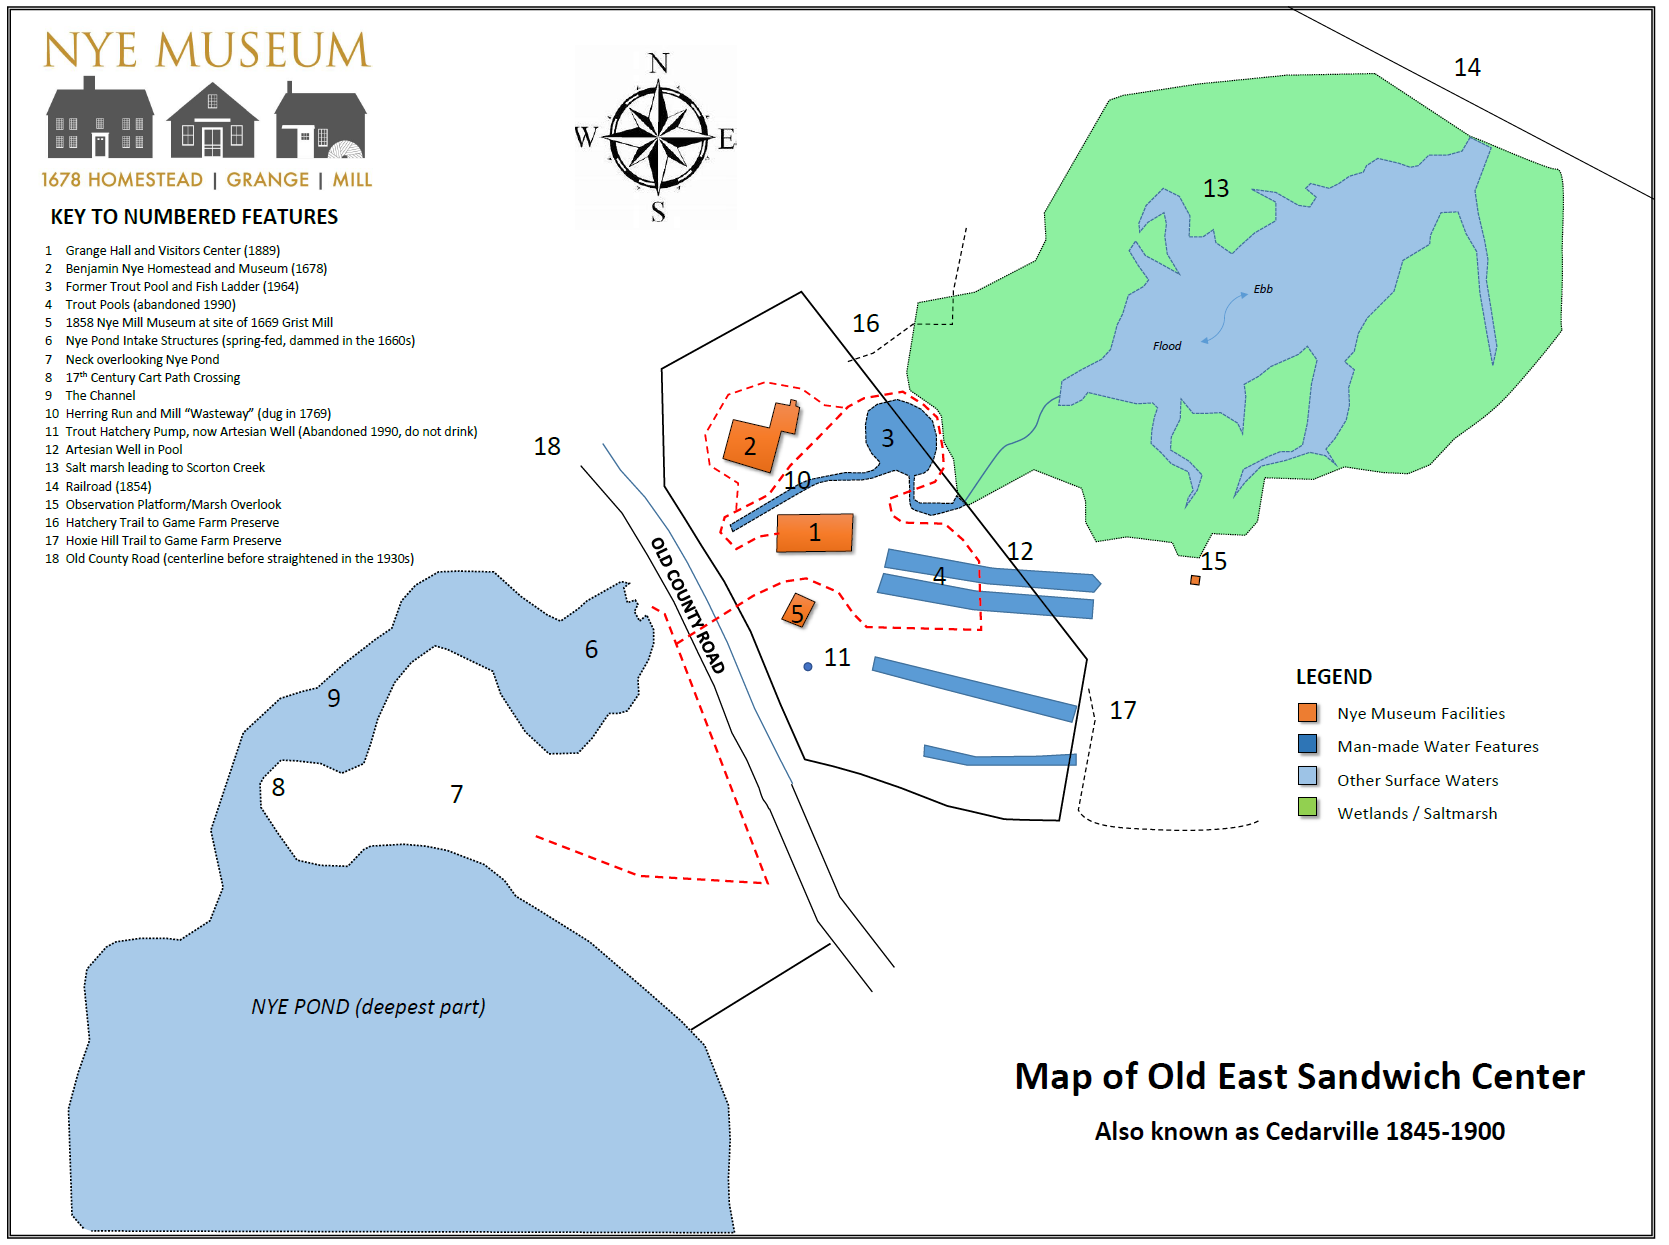 Self guided tour map